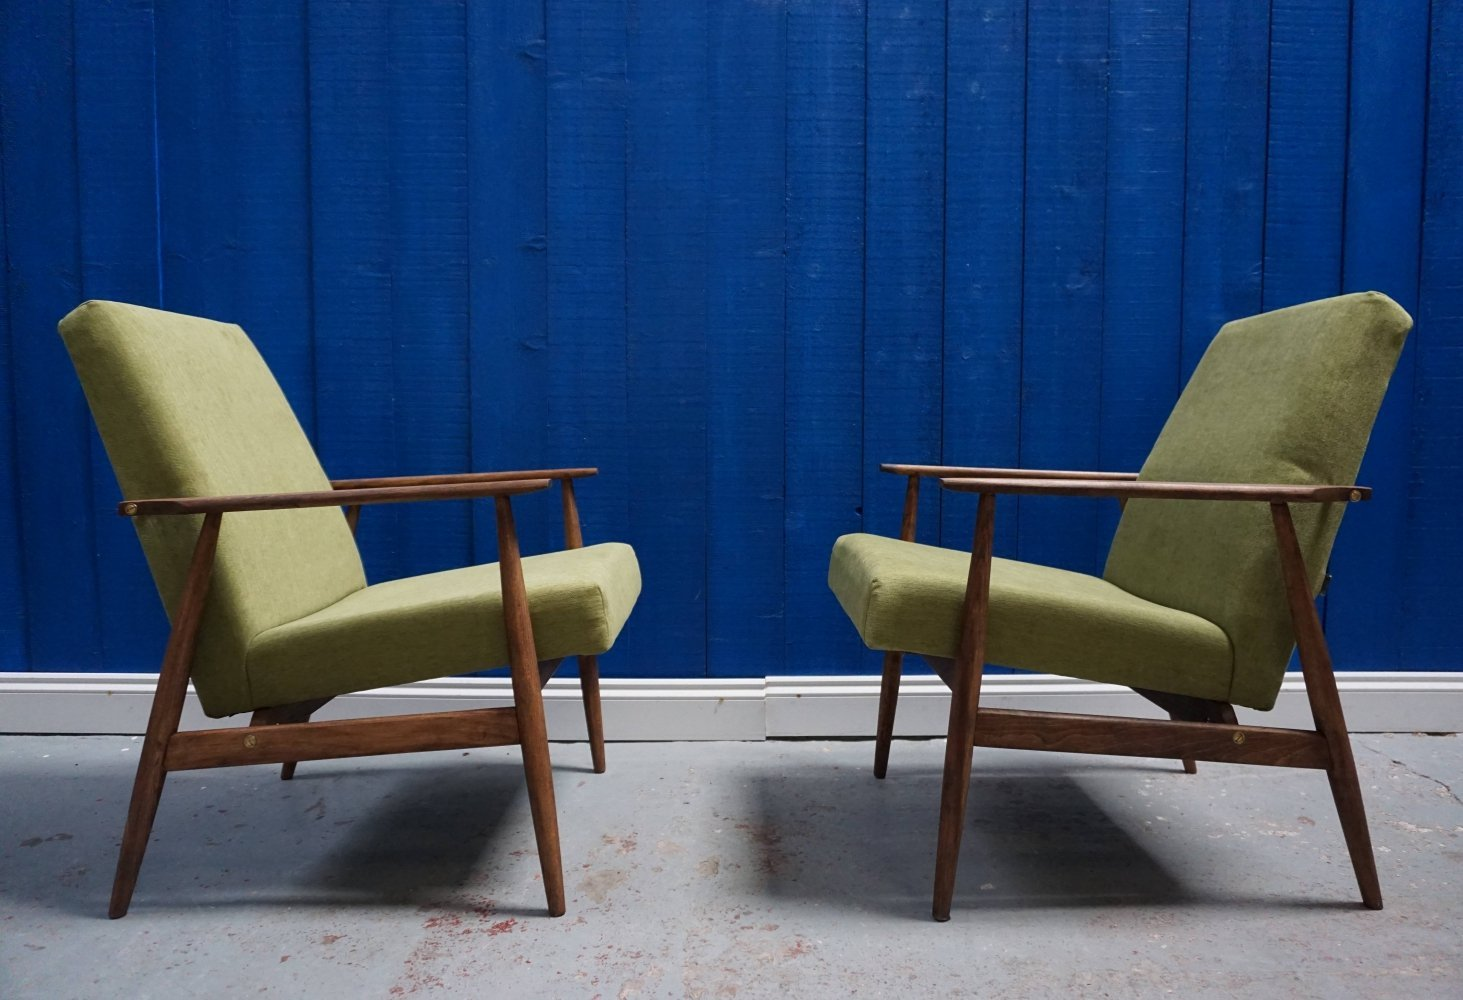 2 x Mid Century Armchair in Green by H. Lis, 1970